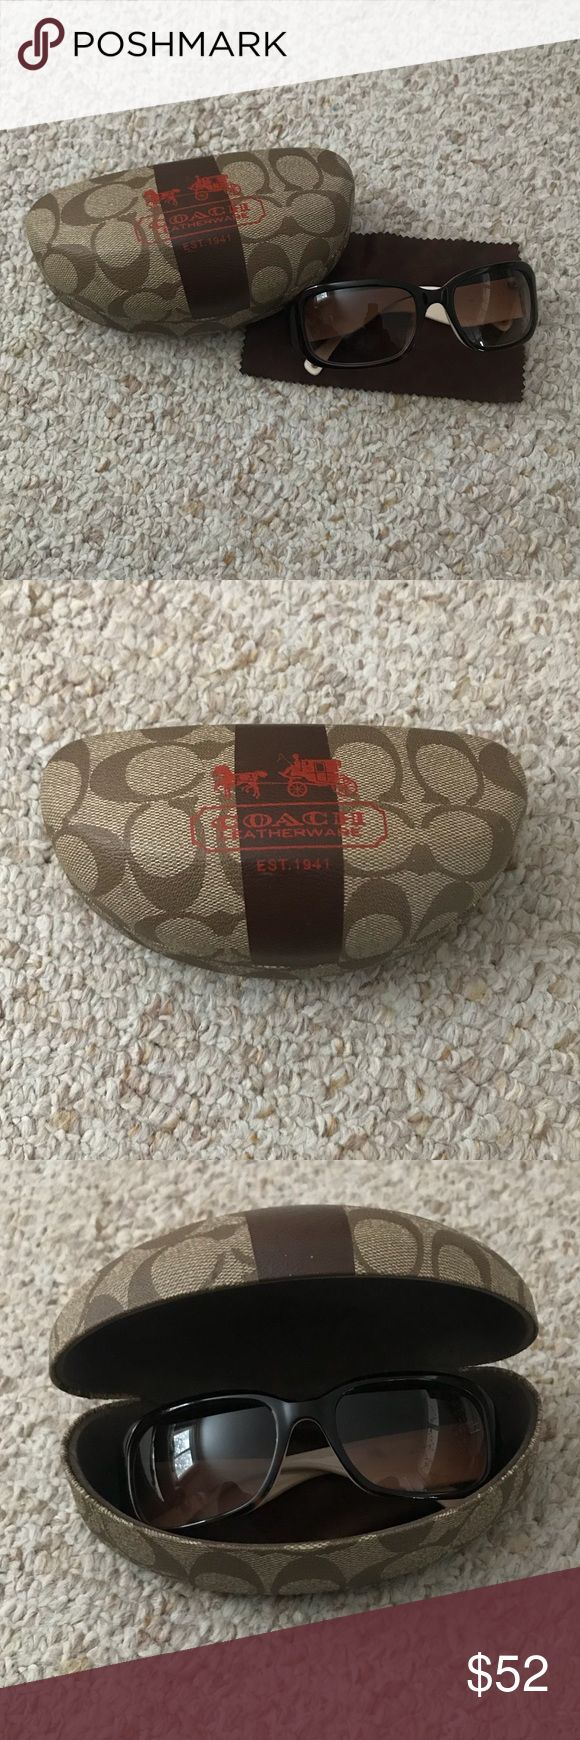 Coach Sunglasses Authentic Coach sunglasses to save your eyes from the sun, while looking fresh. Great condition. Order includes case, glasses, and cleansing cloth. No scratches or marks. Coach Accessories Glasses